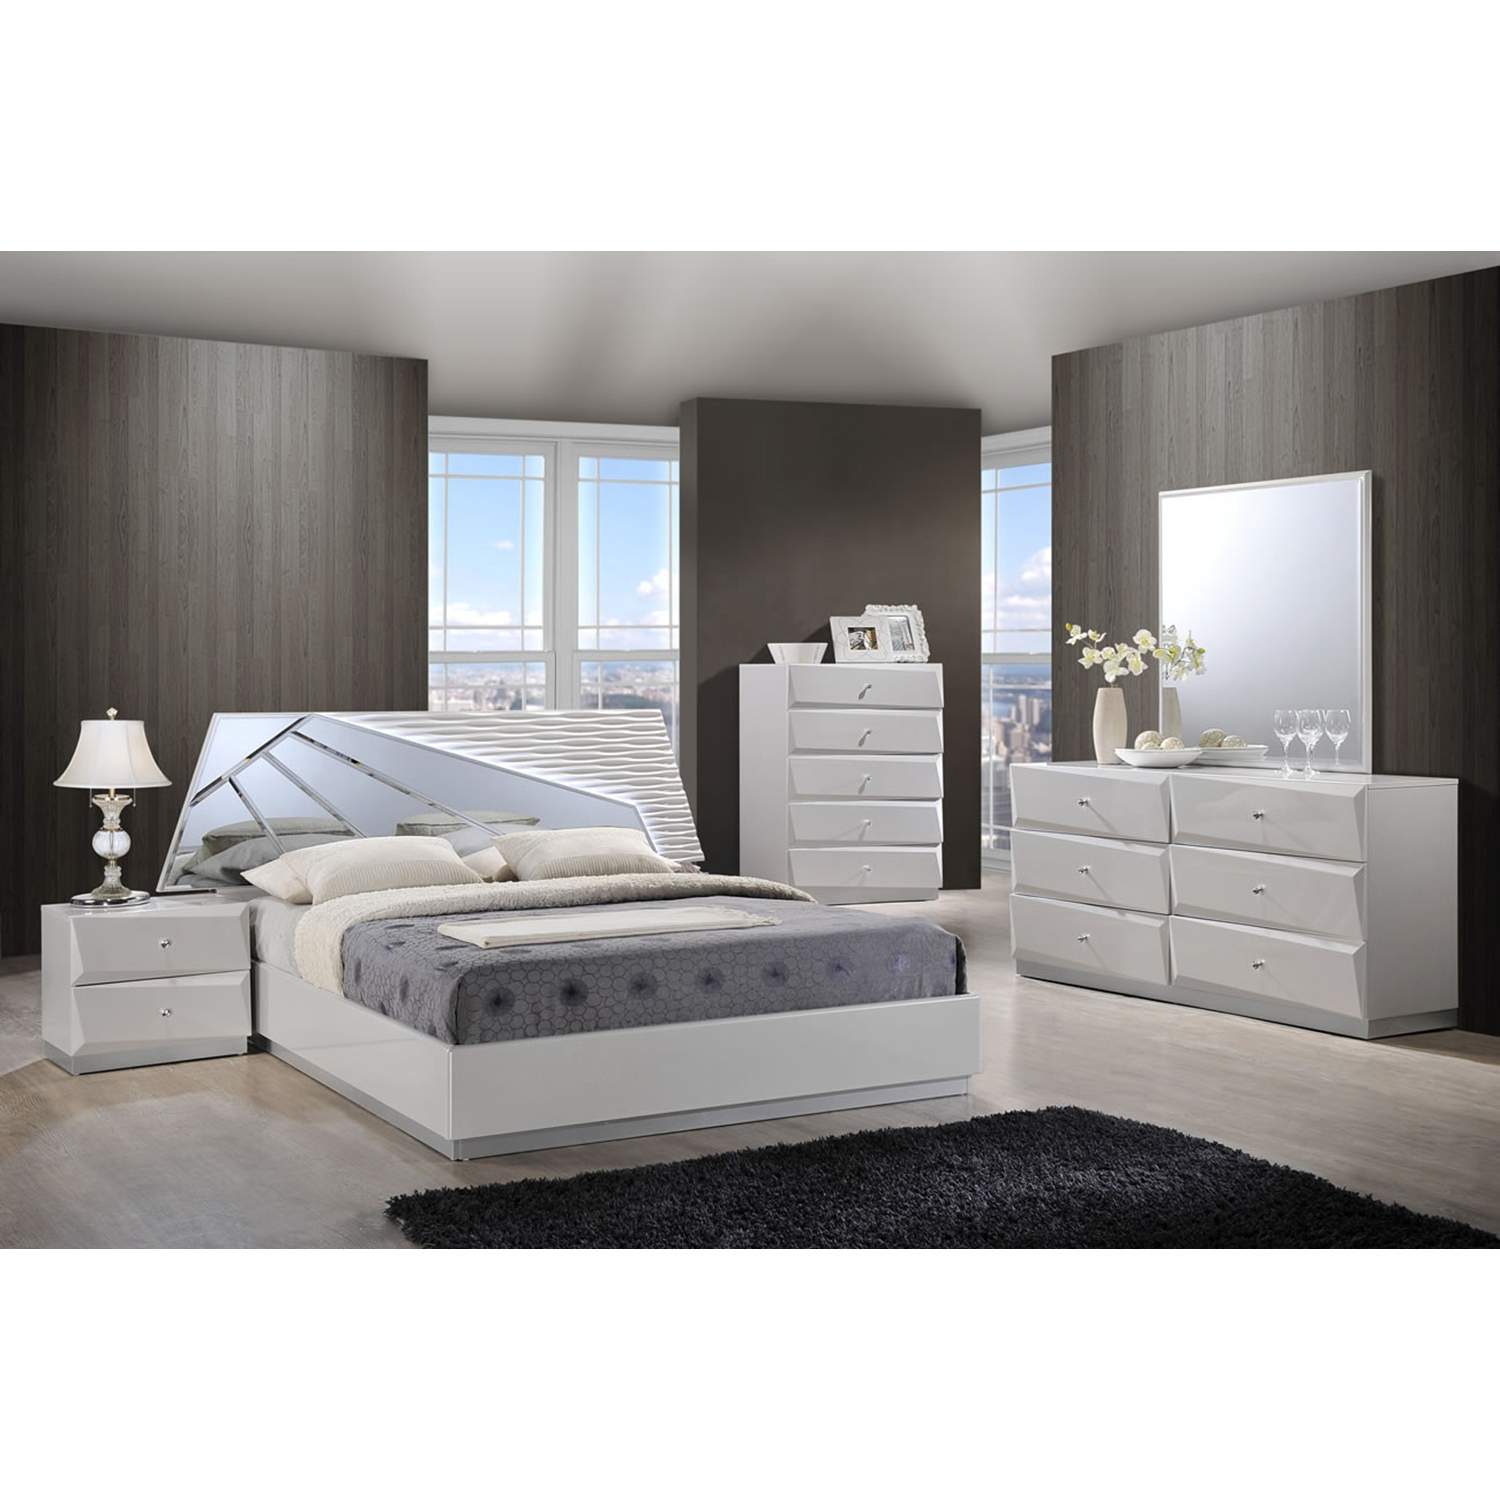 ... Barcelona Bedroom Set In High Gloss Silver Line   GLO BARCELONA 116 BED